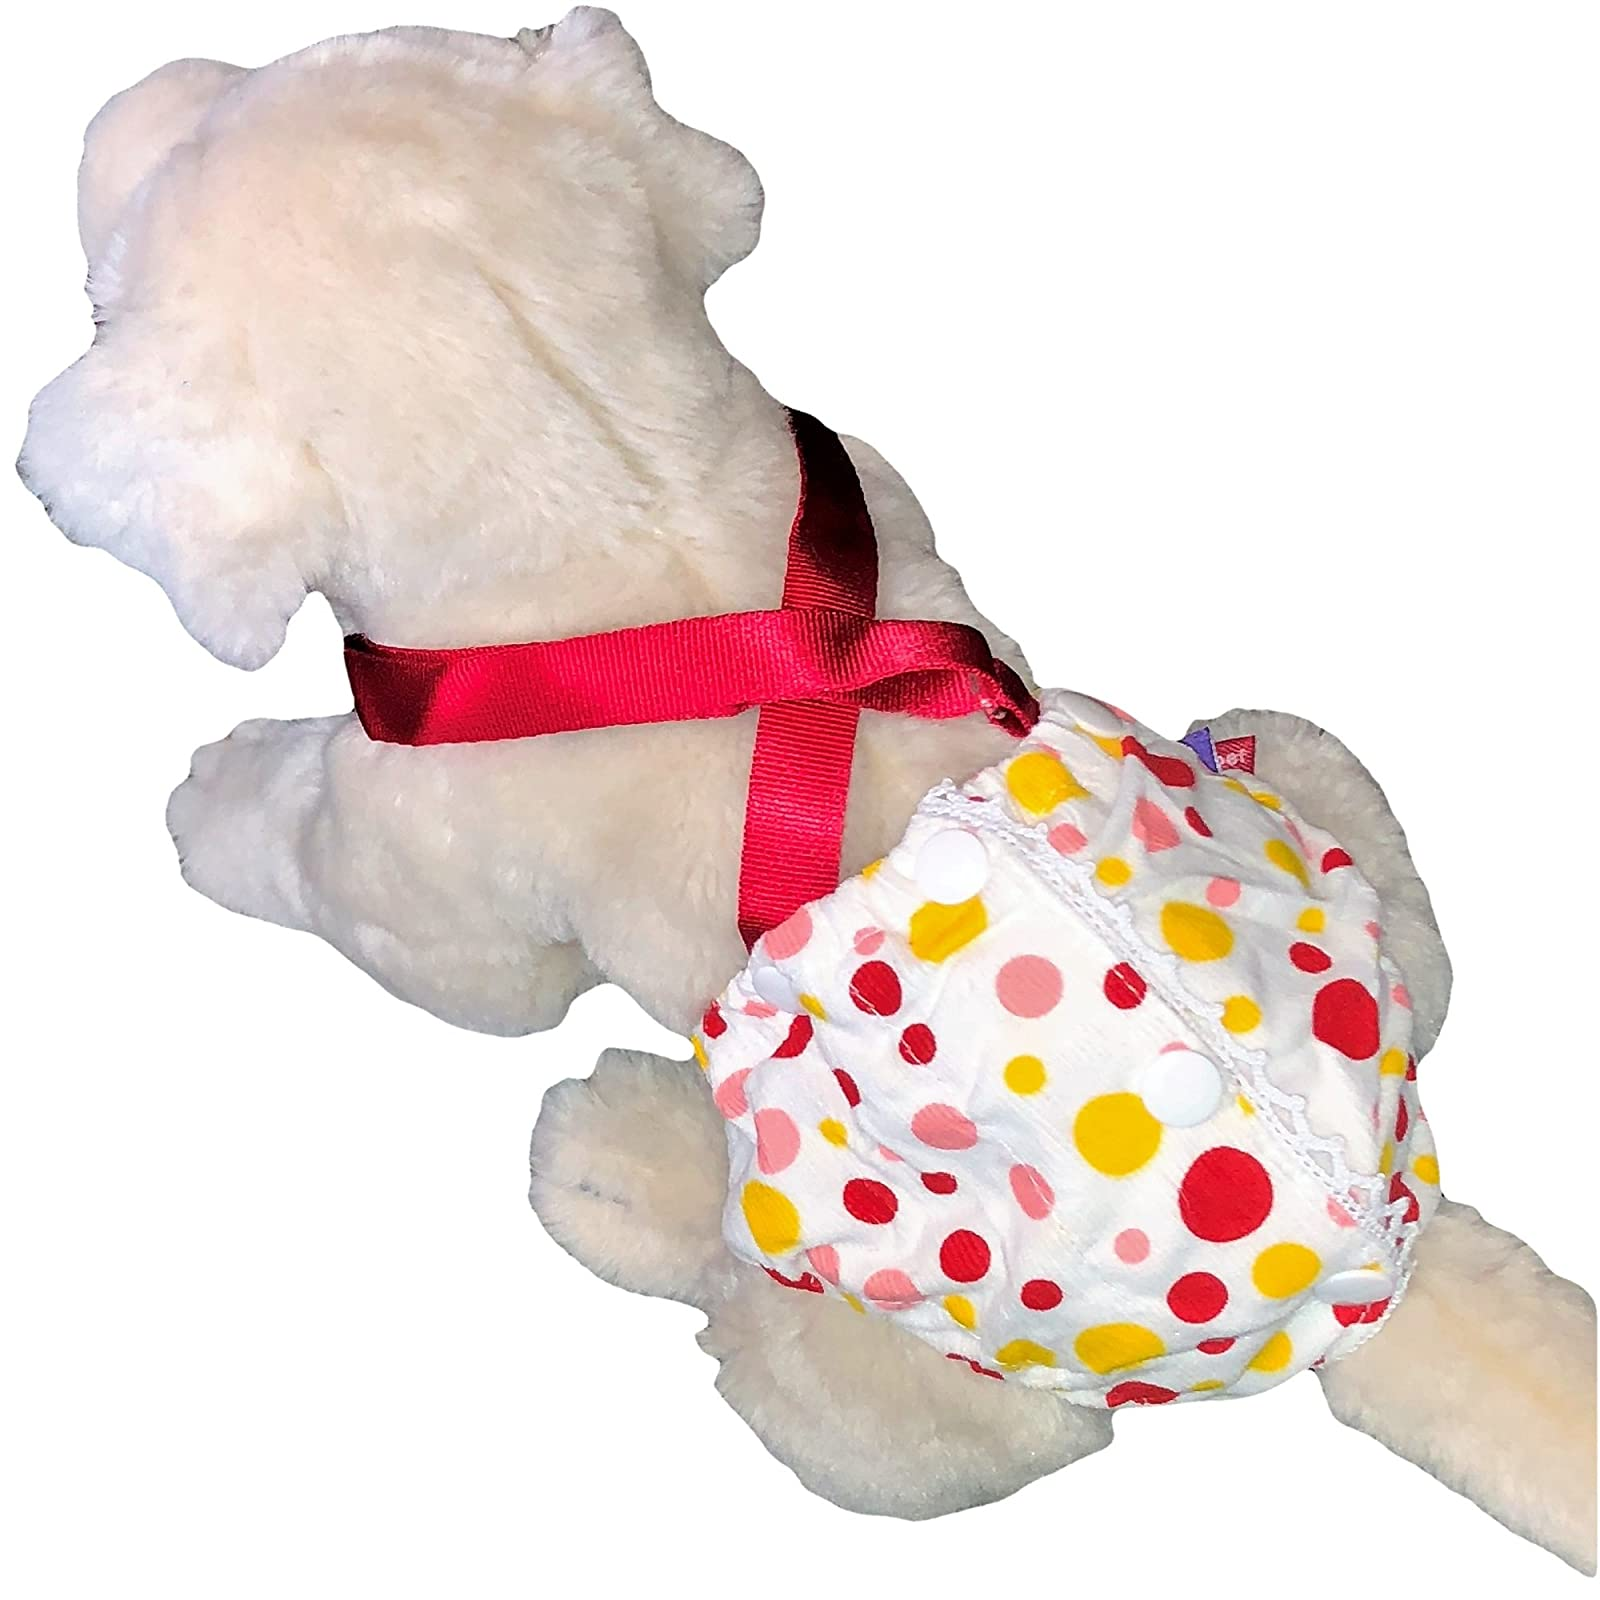 FunnyDogClothes Female Dog Diaper With Suspenders COTTON - 6